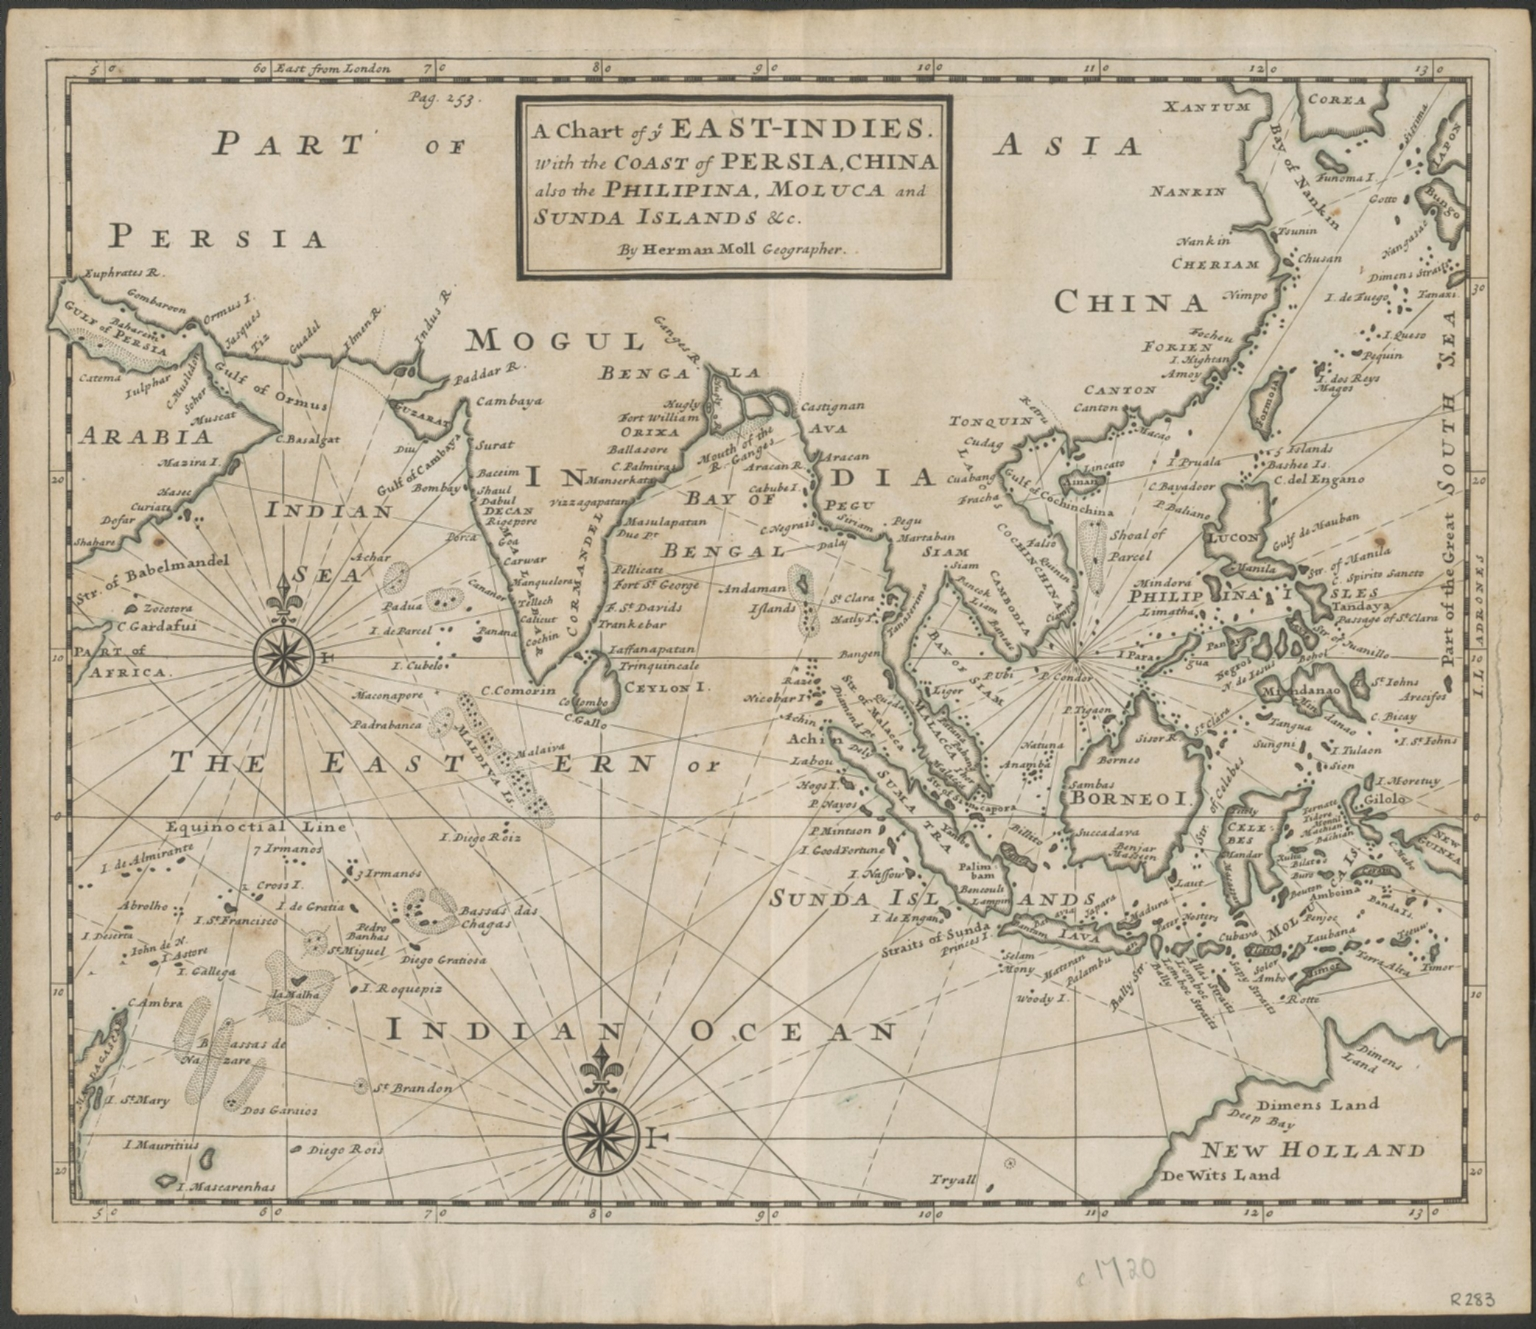 A chart of ye East-Indies with the coast of Persia, China also the Philipina, Moluca and Sunda Islands, &c.